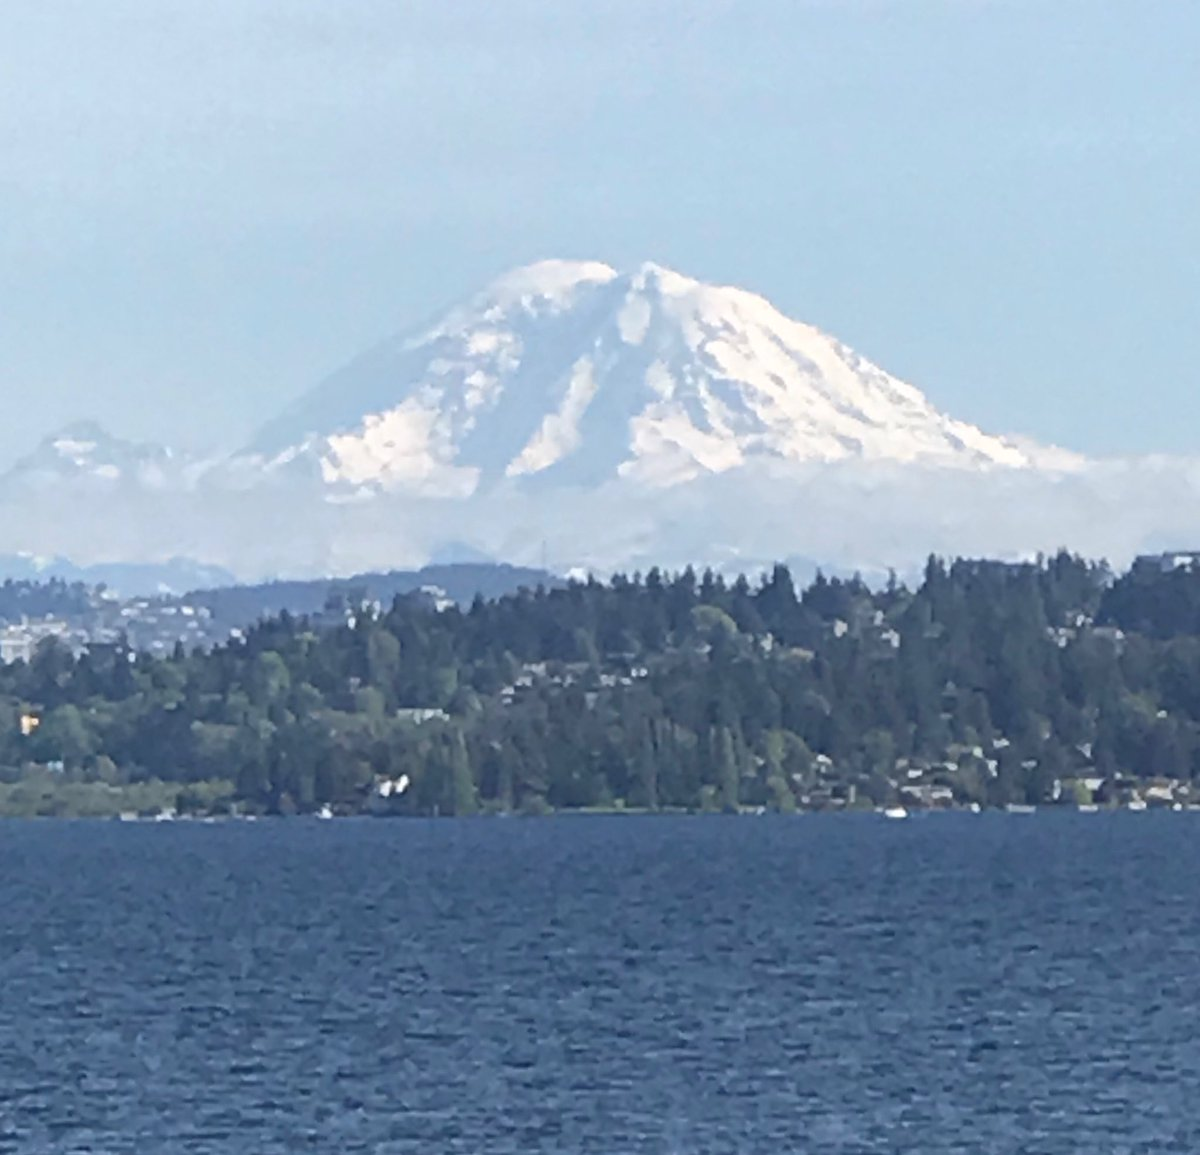 Summer is coming early to the Seattle area. Mt. Rainer is floating above the clouds.